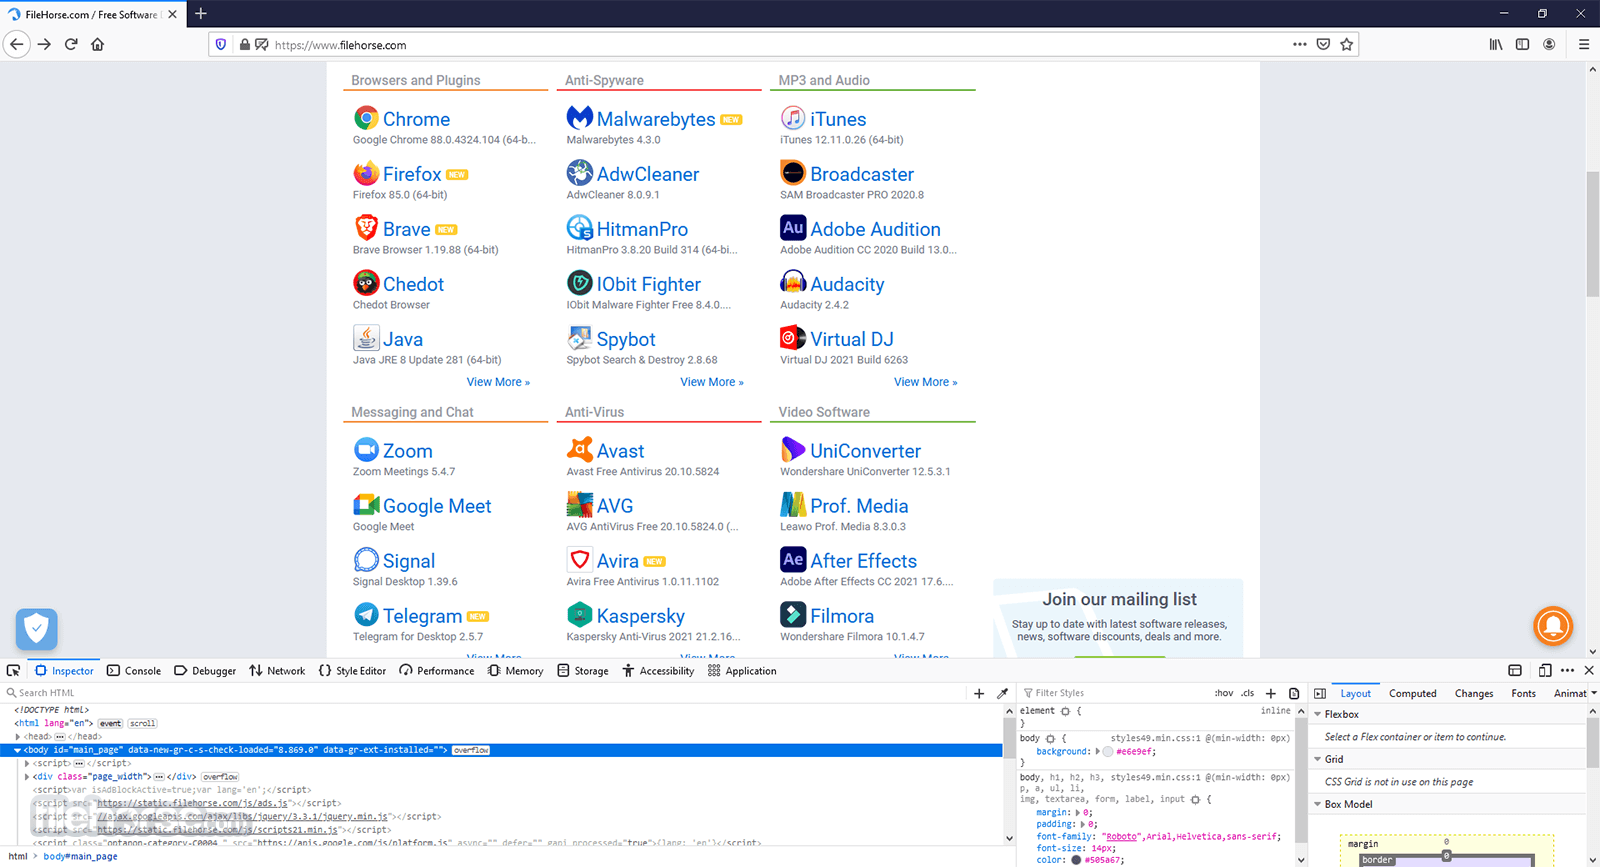 Firefox 62.0.3 (64-bit) Screenshot 2